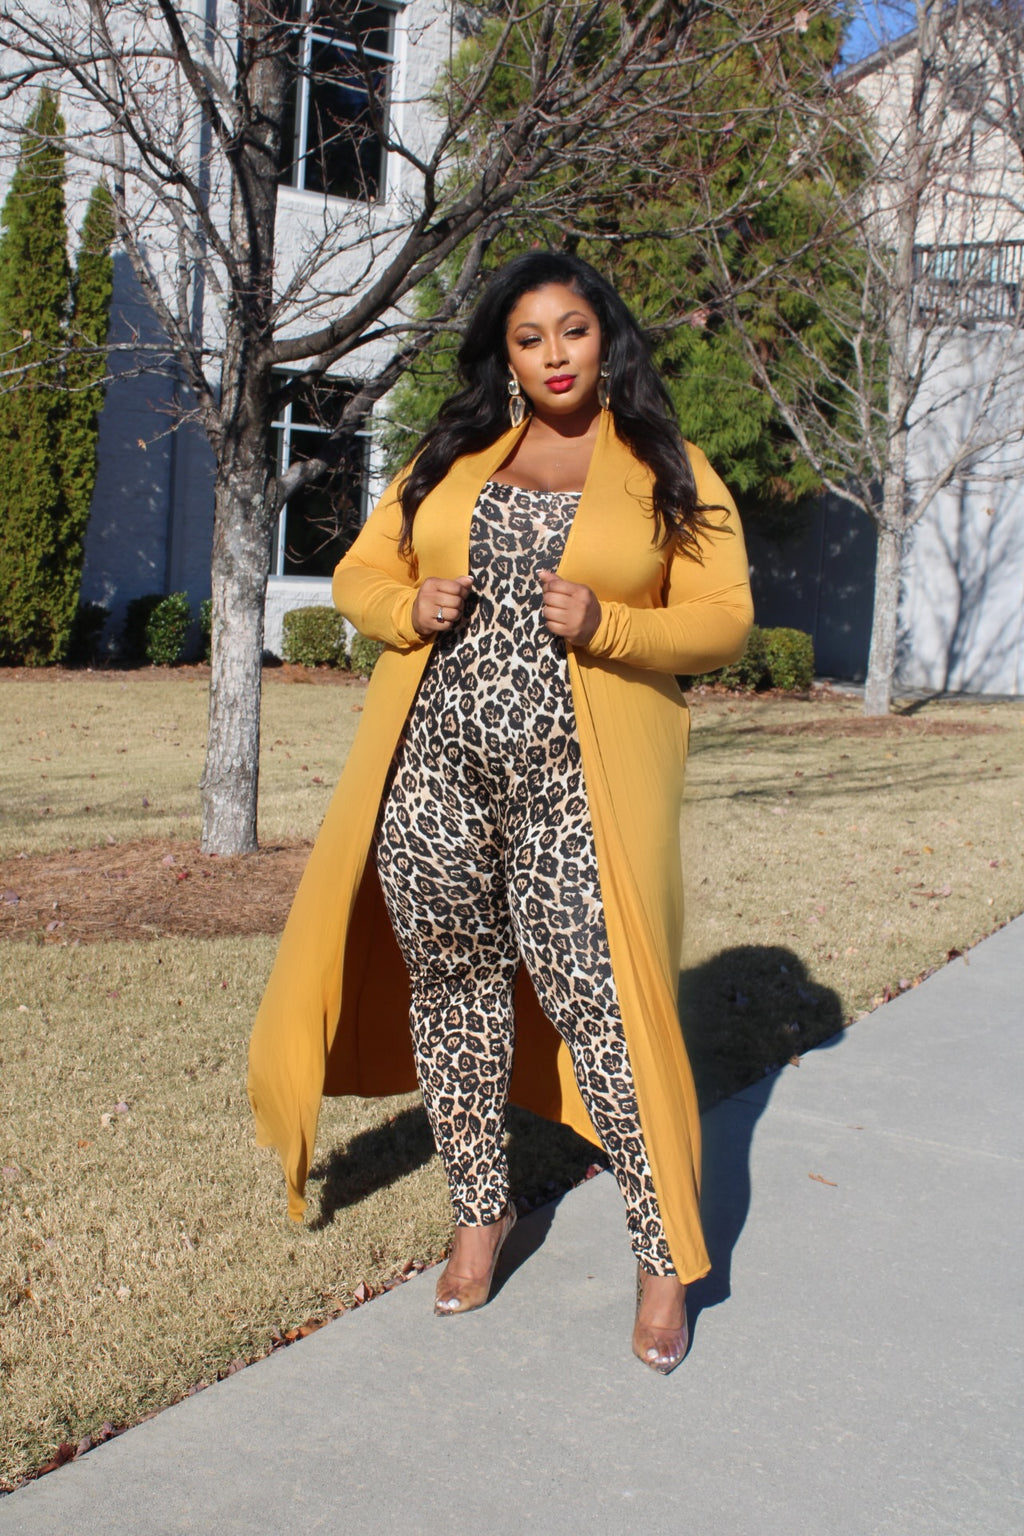 Your Favorite Catsuit (Leopard)